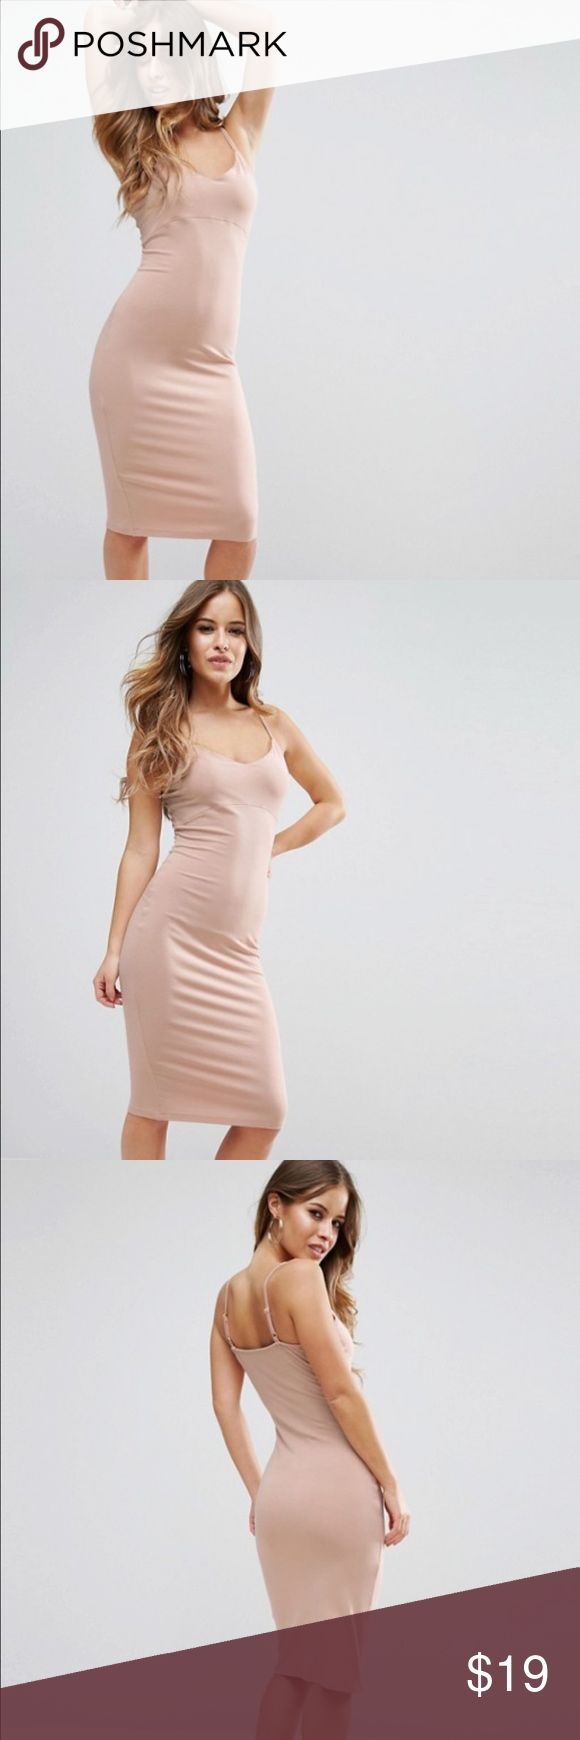 Nude bodycon dress .  Very cute. Simplistic and great to combine with chunky cardigans, kimonos, jackets, blazers. I ordered petite since I am 5'2. This  would fit anyone who wears an XS. It's form fitting but also stretchy. Adjustable straps. Length is below the knee. Just like on the model. Great color for spring.  ASOS Dresses Midi